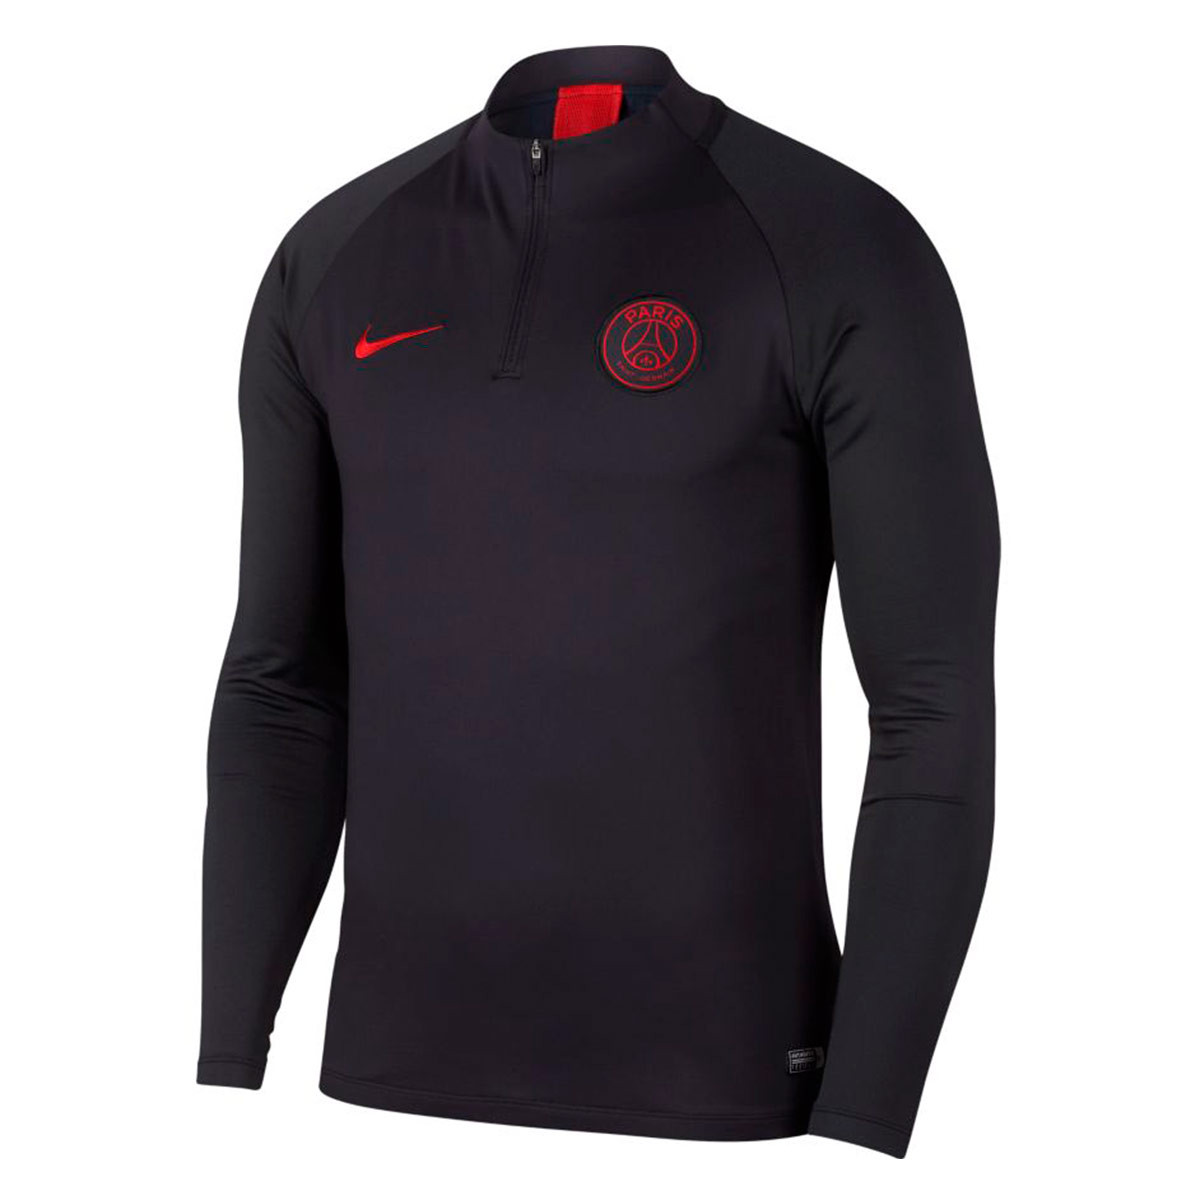 cheap for discount d5fe3 87740 Sudadera Paris Saint-Germain Dry Strike Dril Top 2019-2020 Oil  grey-University red